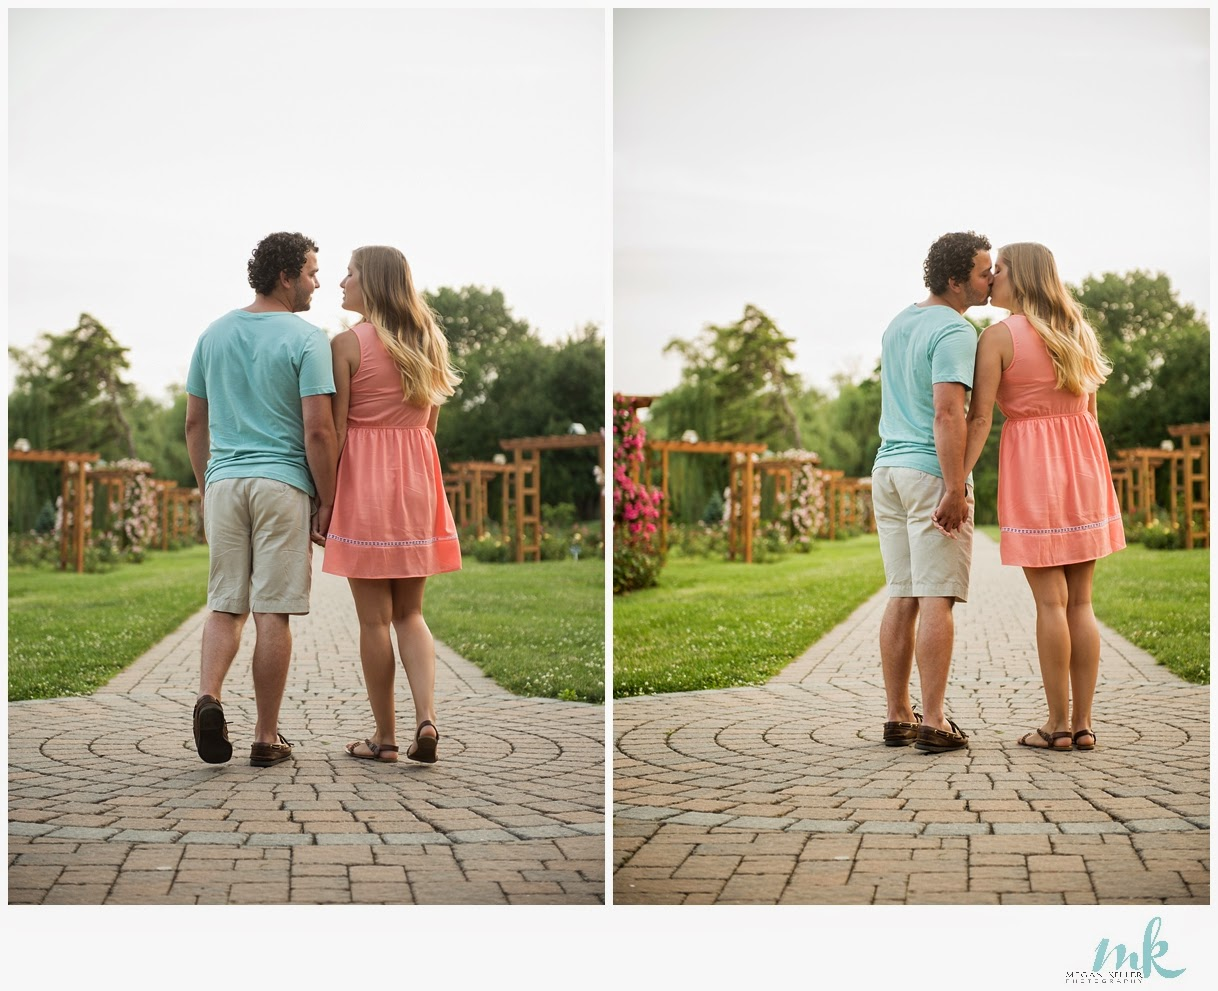 Breanna and Lucas Engagement Session Breanna and Lucas Engagement Session 2014 07 02 0010